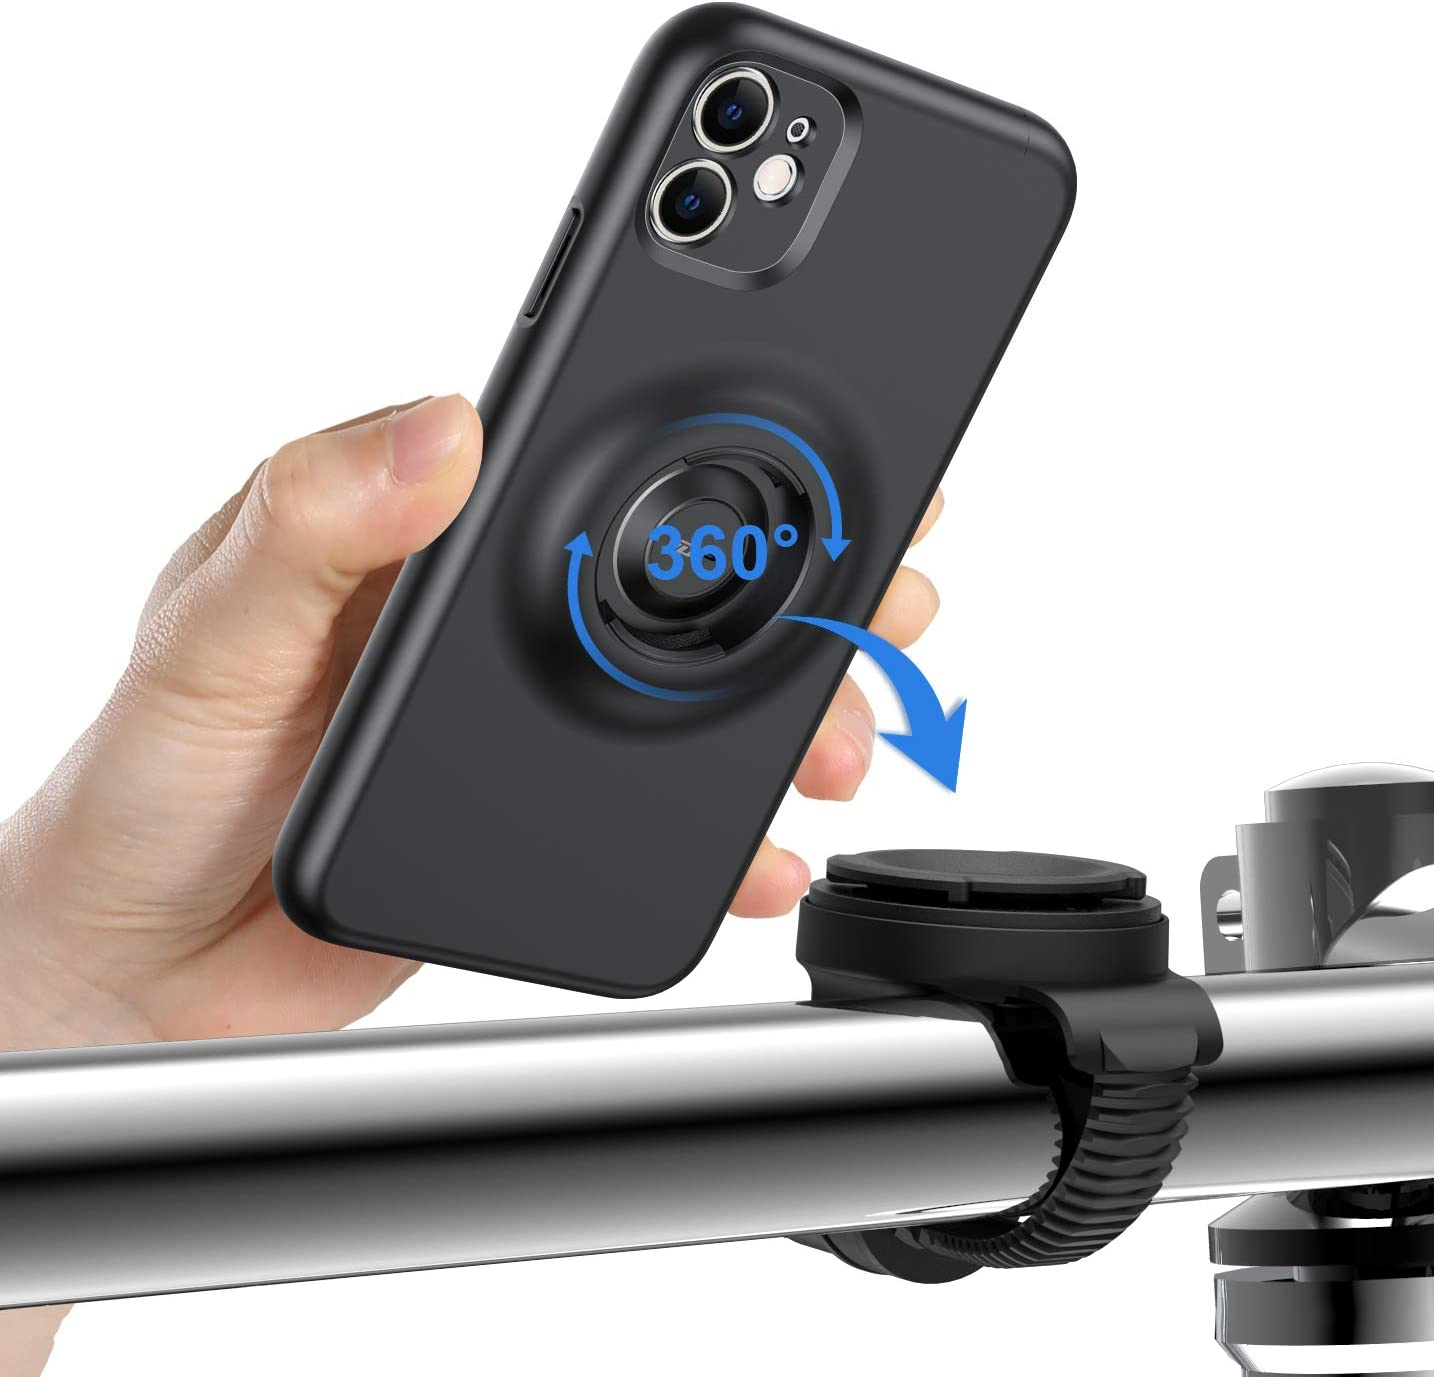 360/° Rotation Universal Motorcycle Phone Mount with Quick Lock for iPhone 11 VUP Detachable Phone Holder with Fully Protective Shockproof Hard iPhone 11 Case Bike Phone Mount Designed for iPhone 11